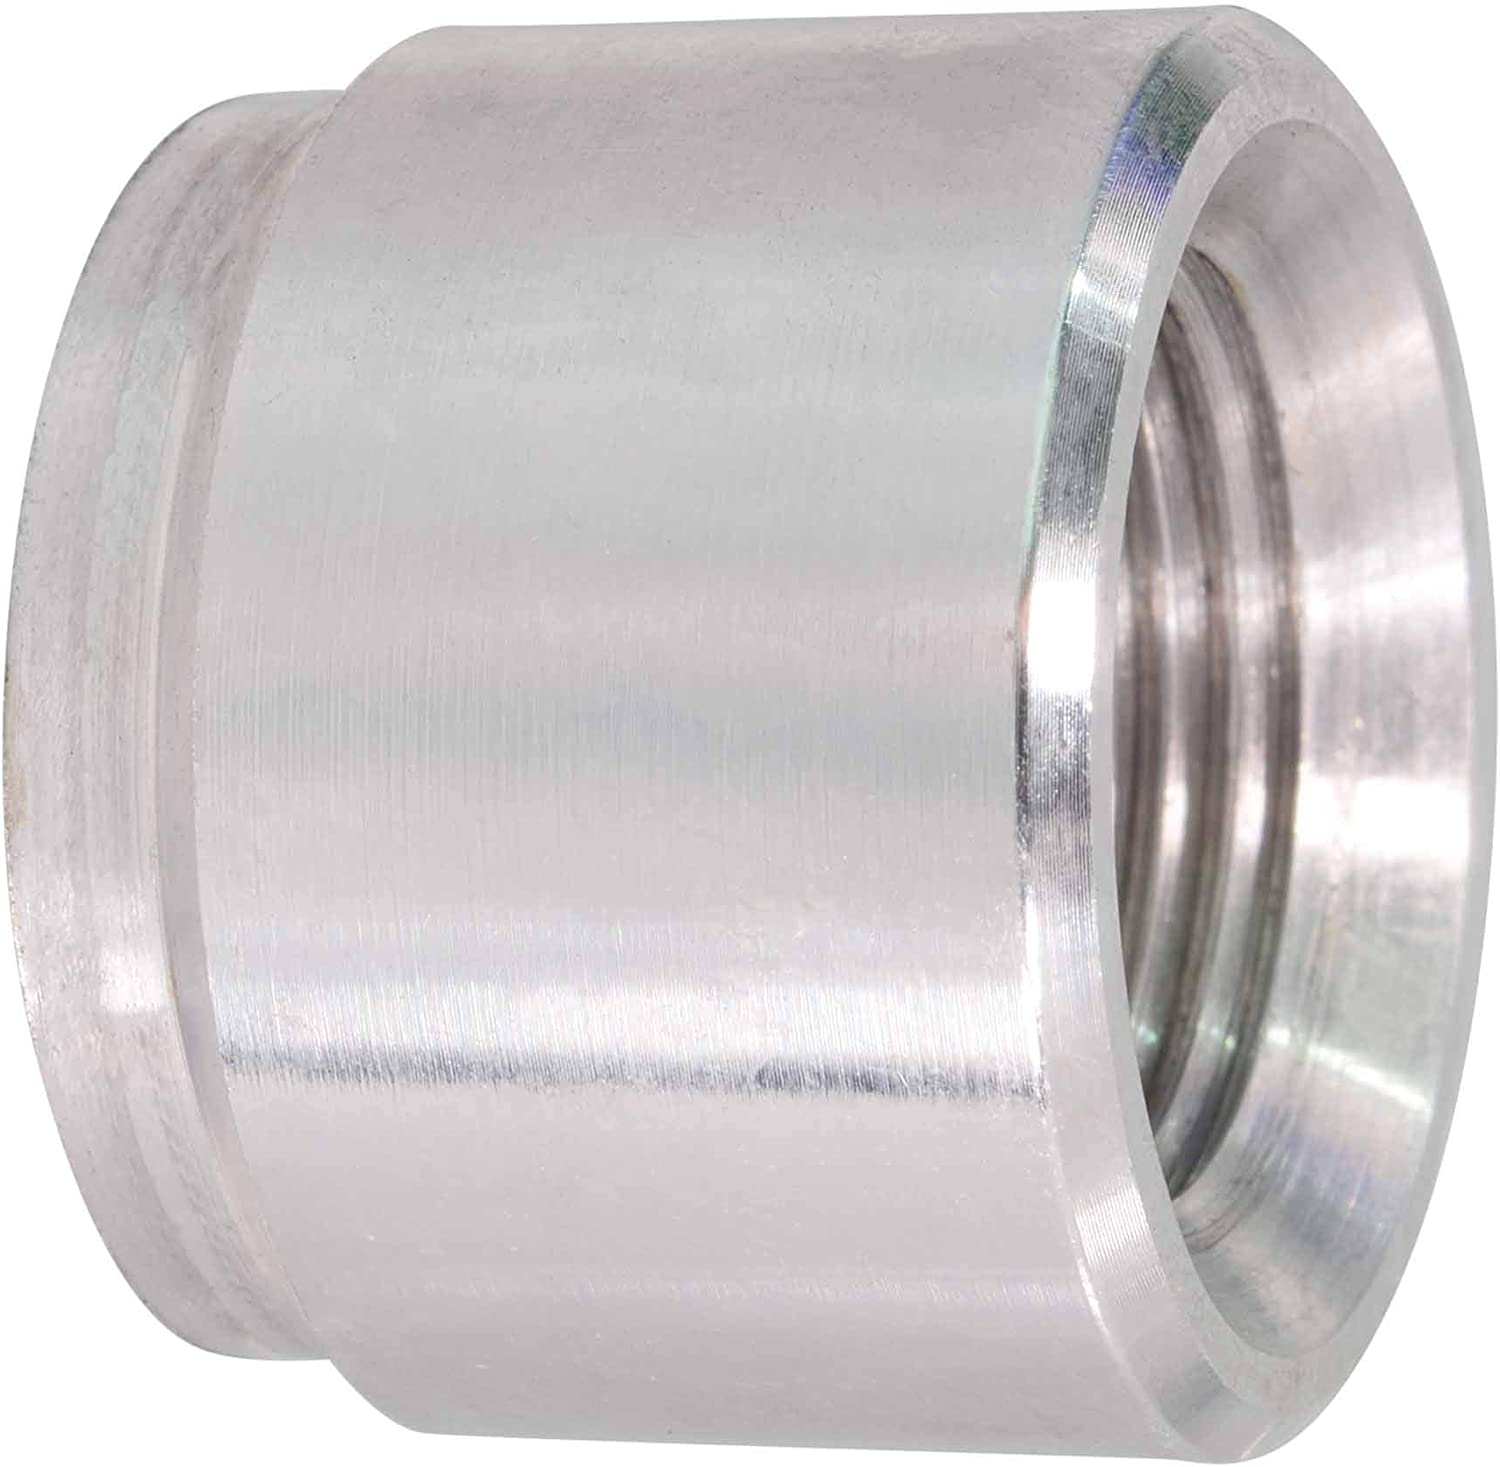 """1//8/"""" NPT Weld Bung Fitting 1//8 NPT Weldable Bung Bare Aluminum Made in USA"""